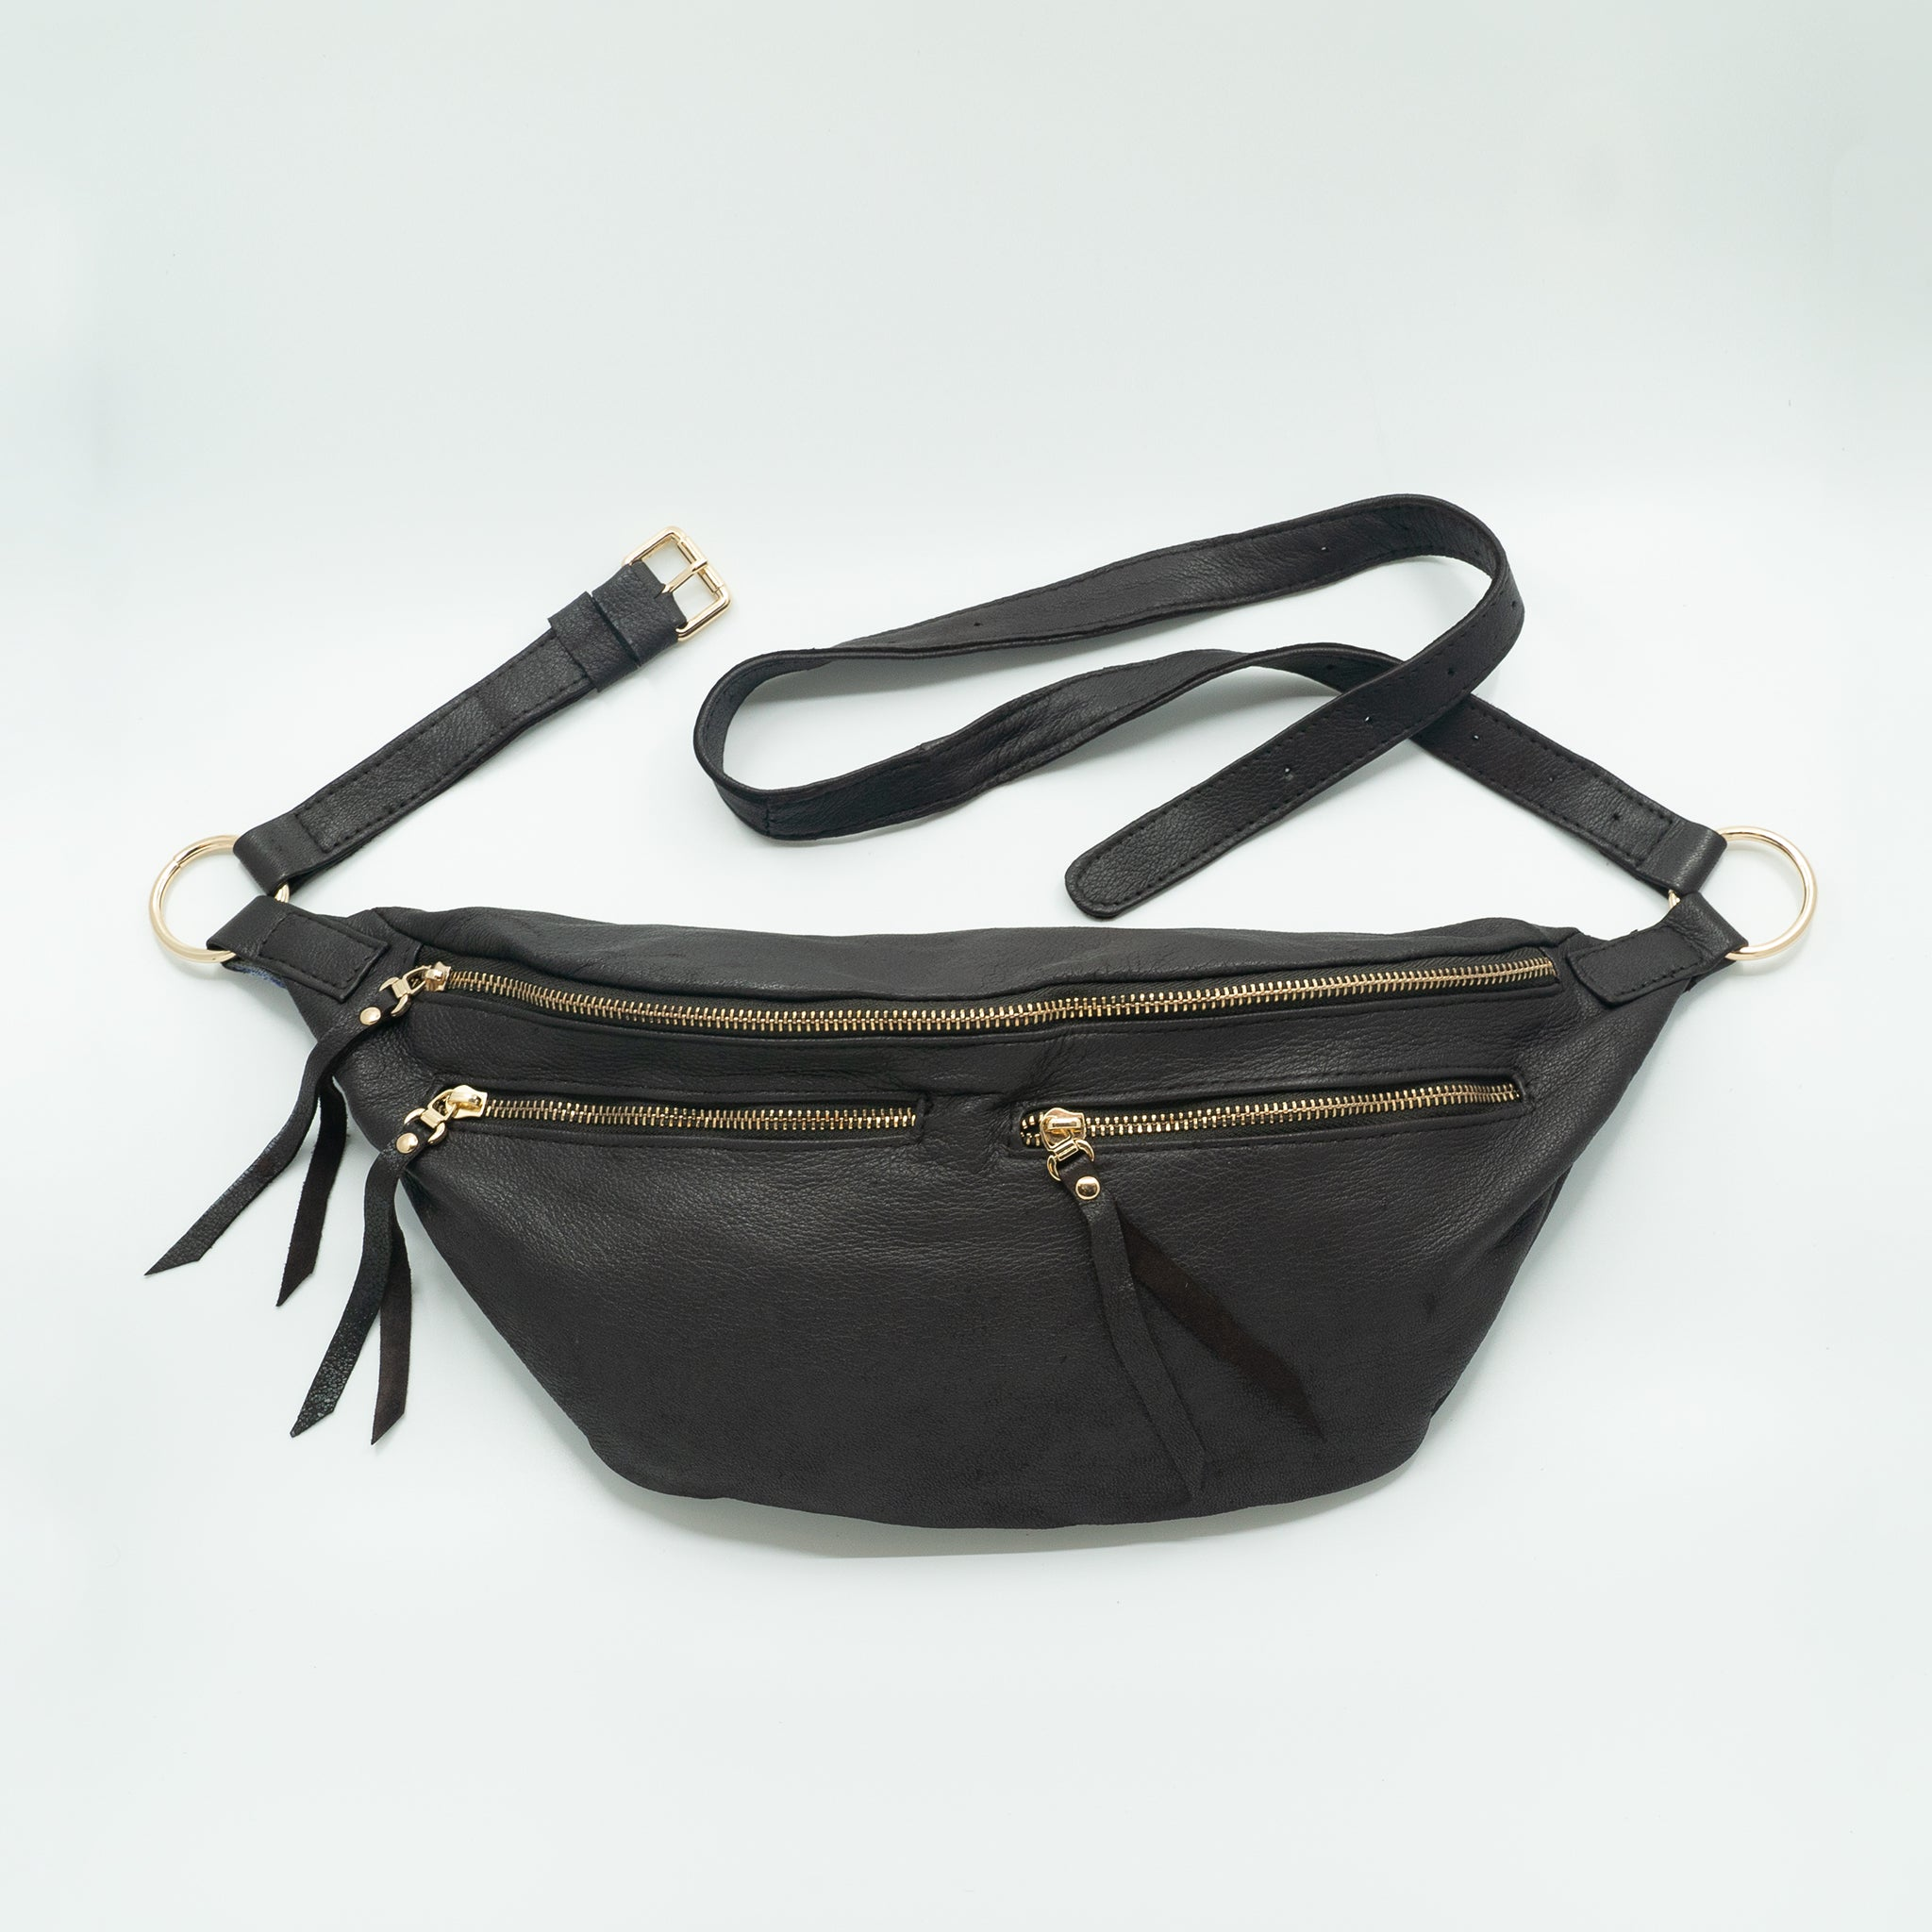 The Everywhere Bag #24 — Grainy Dark Brown Leather with Gold Hardware